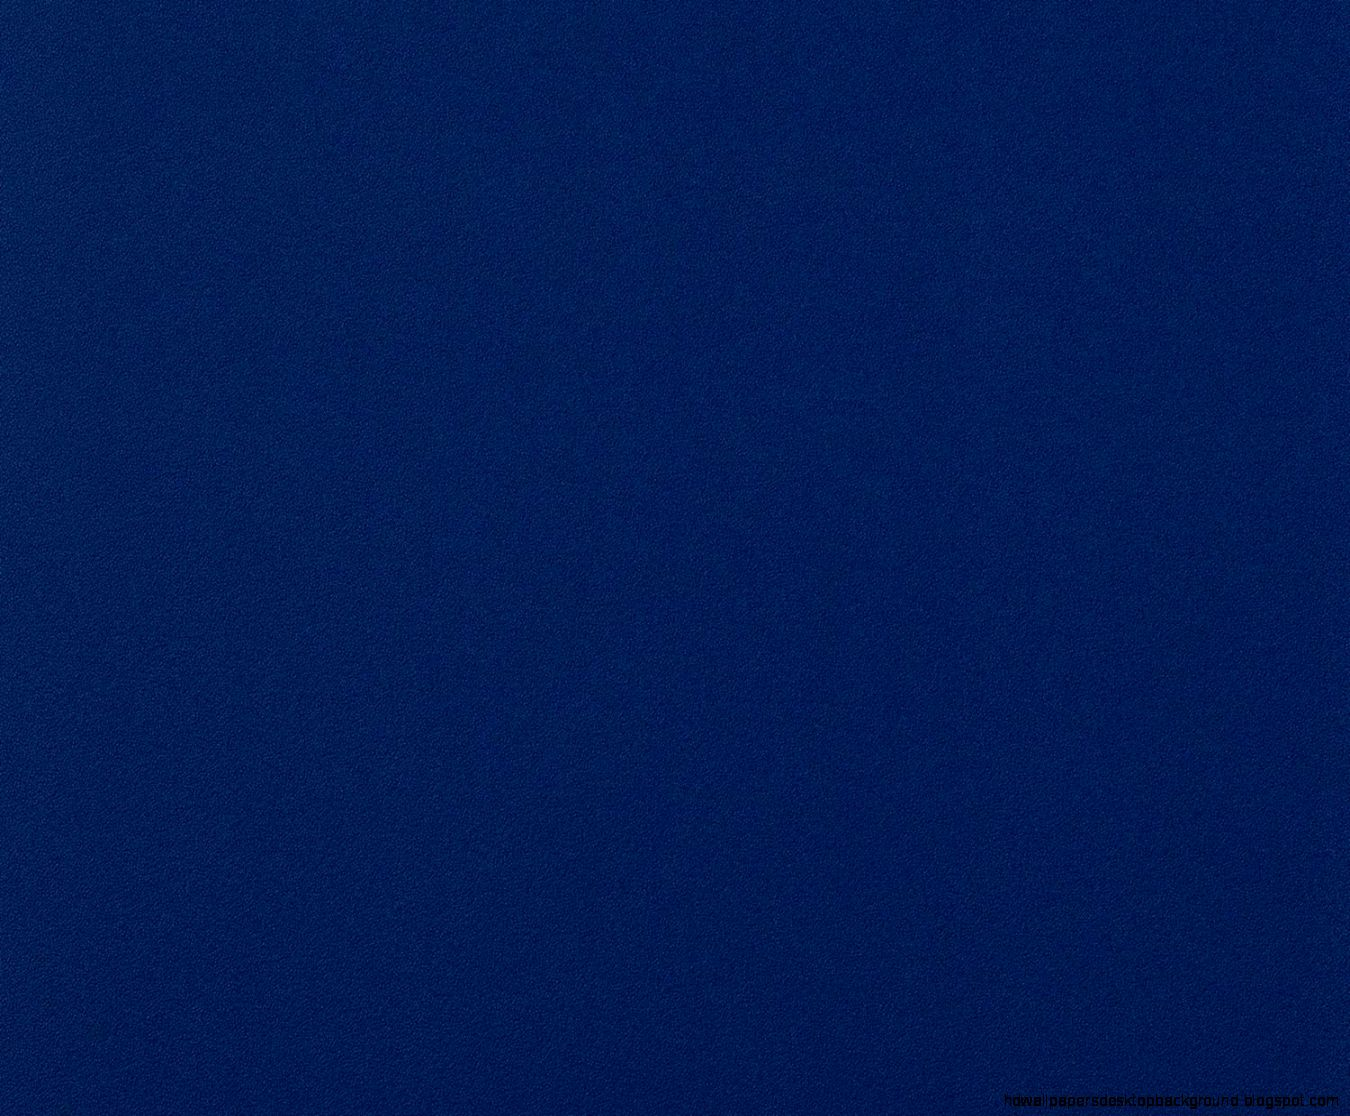 Plain Blue Wallpaper For Android All HD Wallpapers 1350x1116